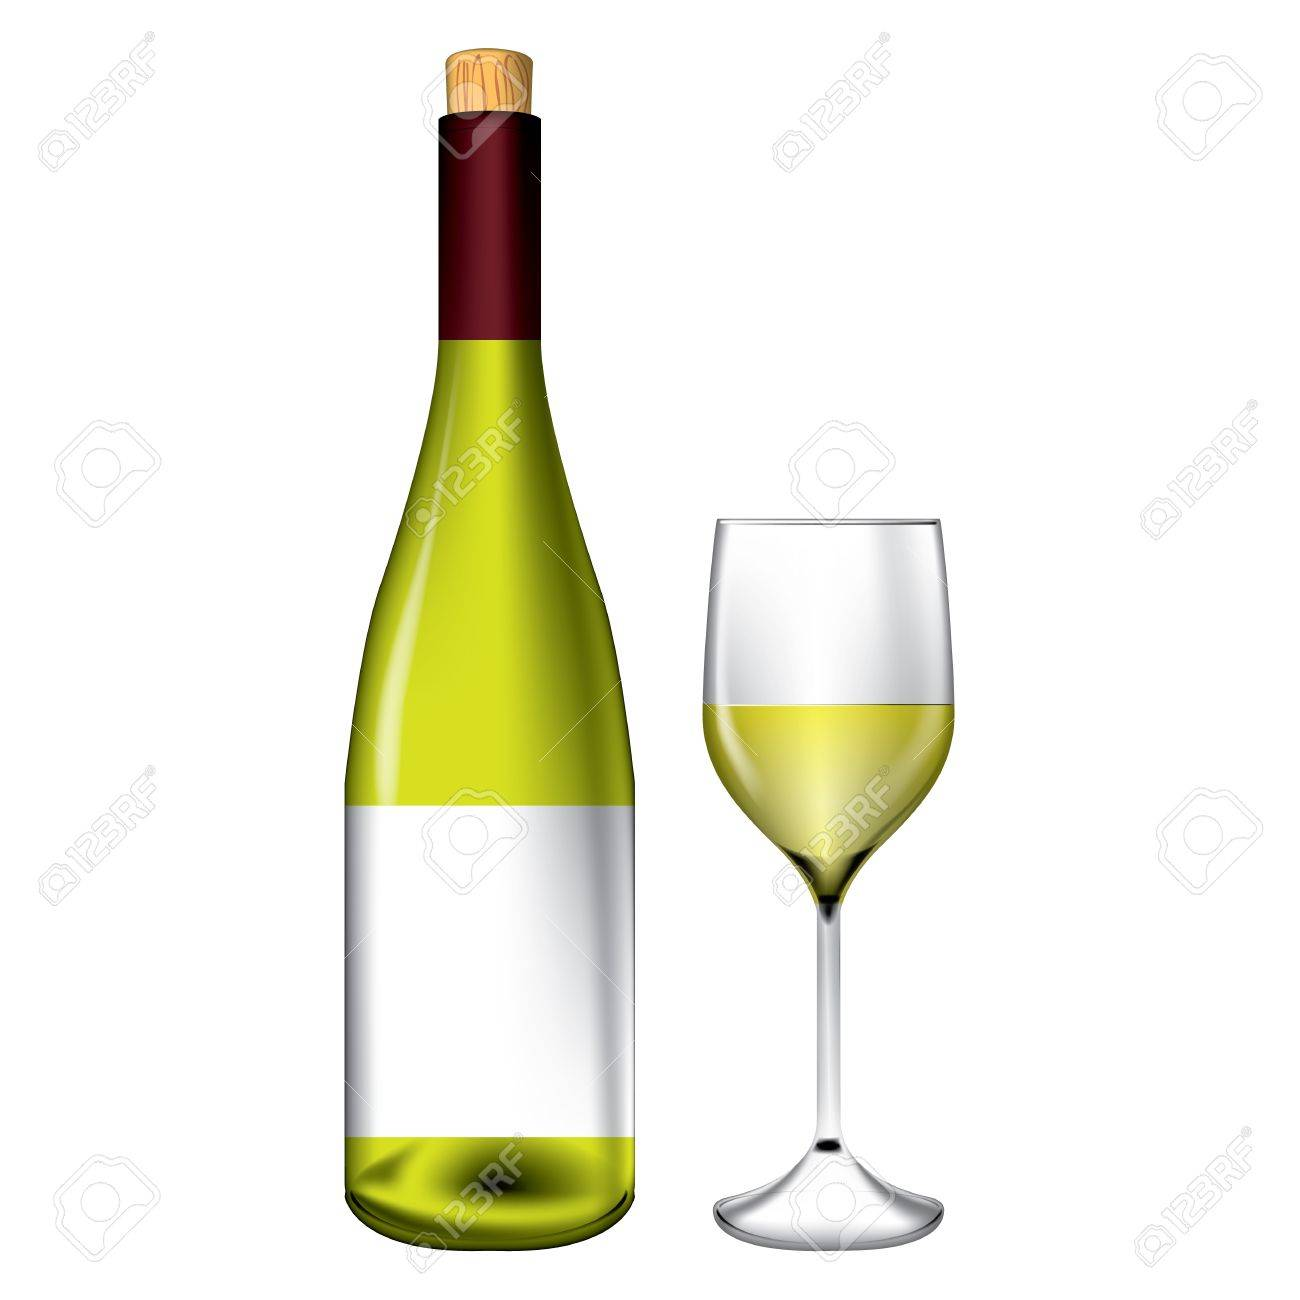 Bottle and wine glass vector Stock Vector - 17688953